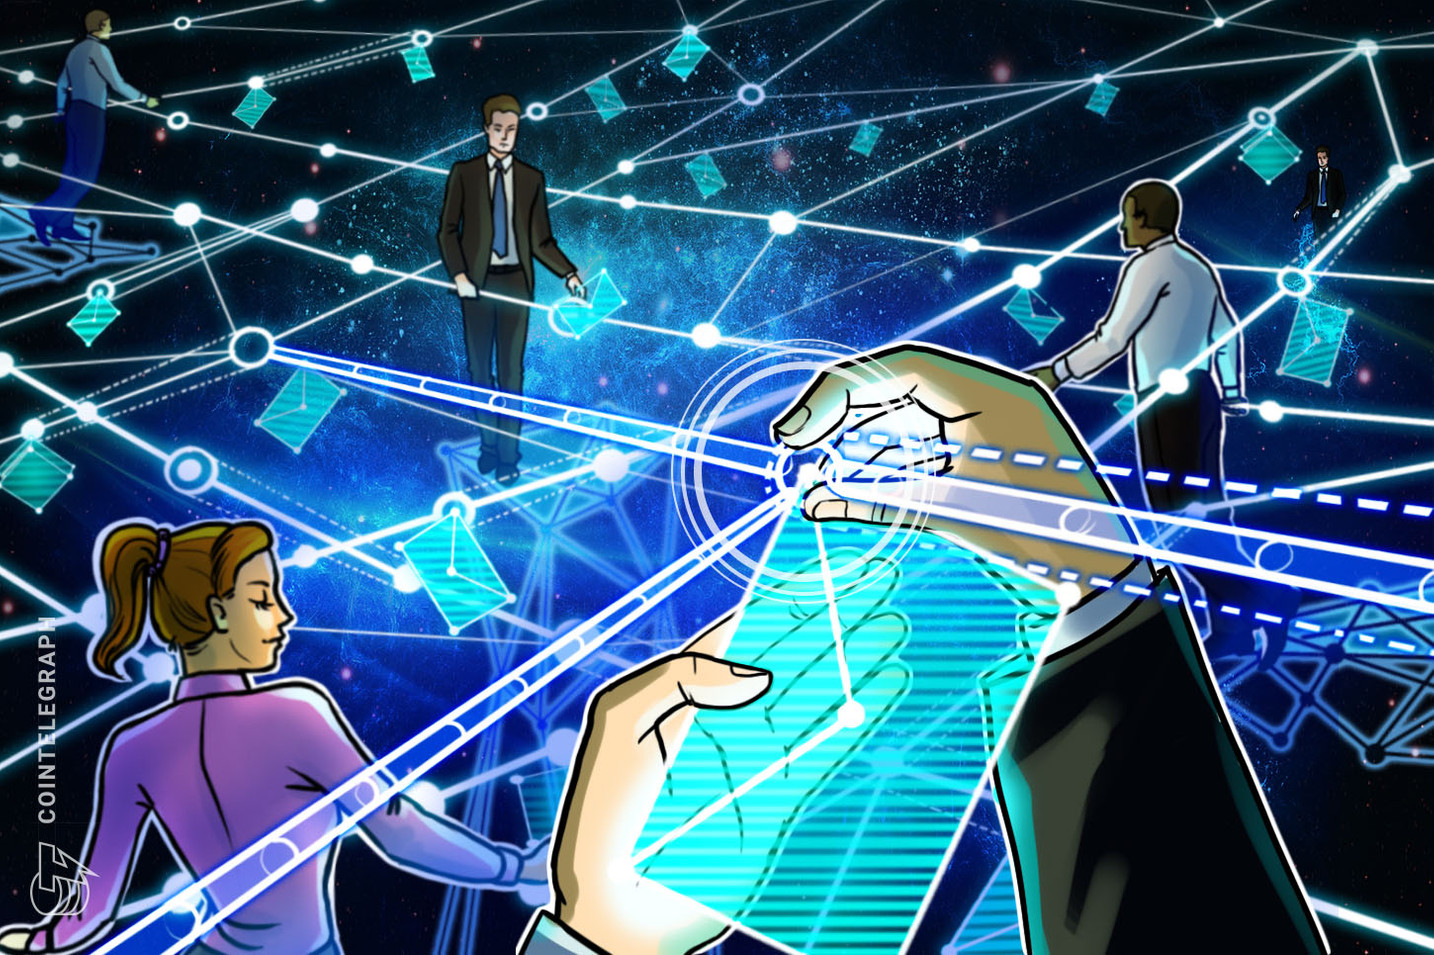 Stacks (STX) price rallies XNUMX% after revealing plans to bring DeFi to Bitcoin